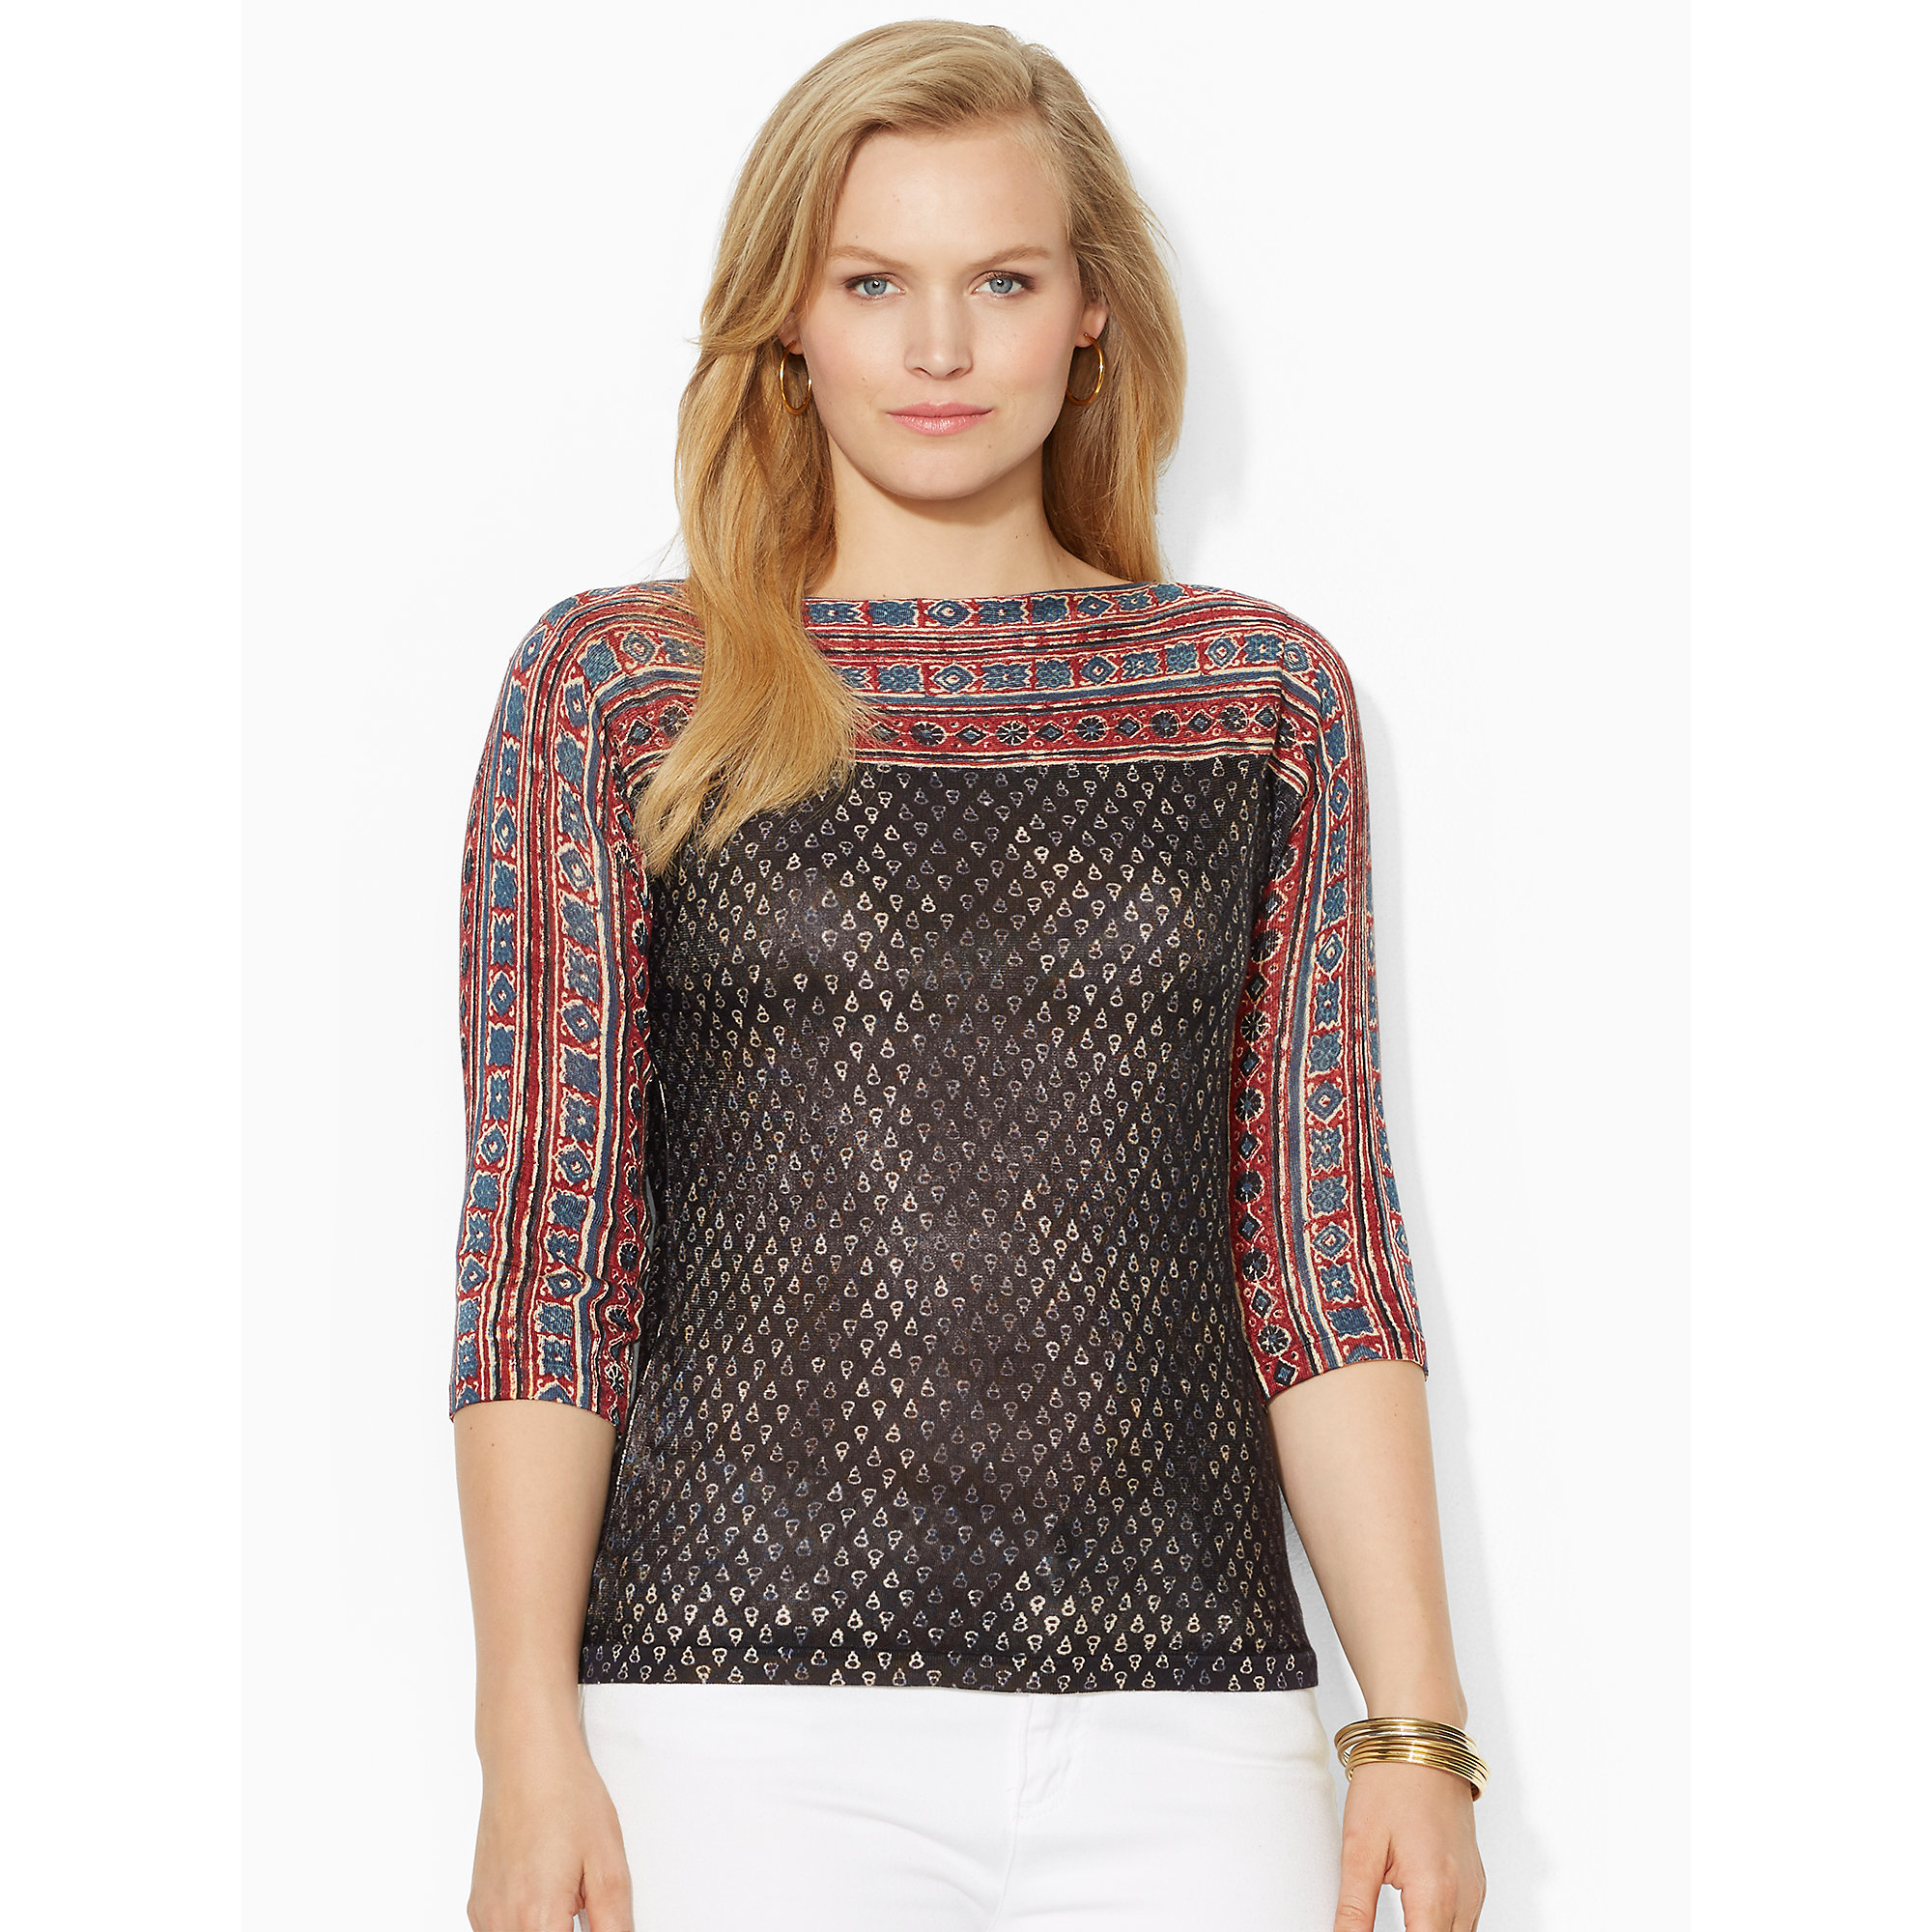 Lyst - Ralph Lauren Geometric Boatneck Sweater